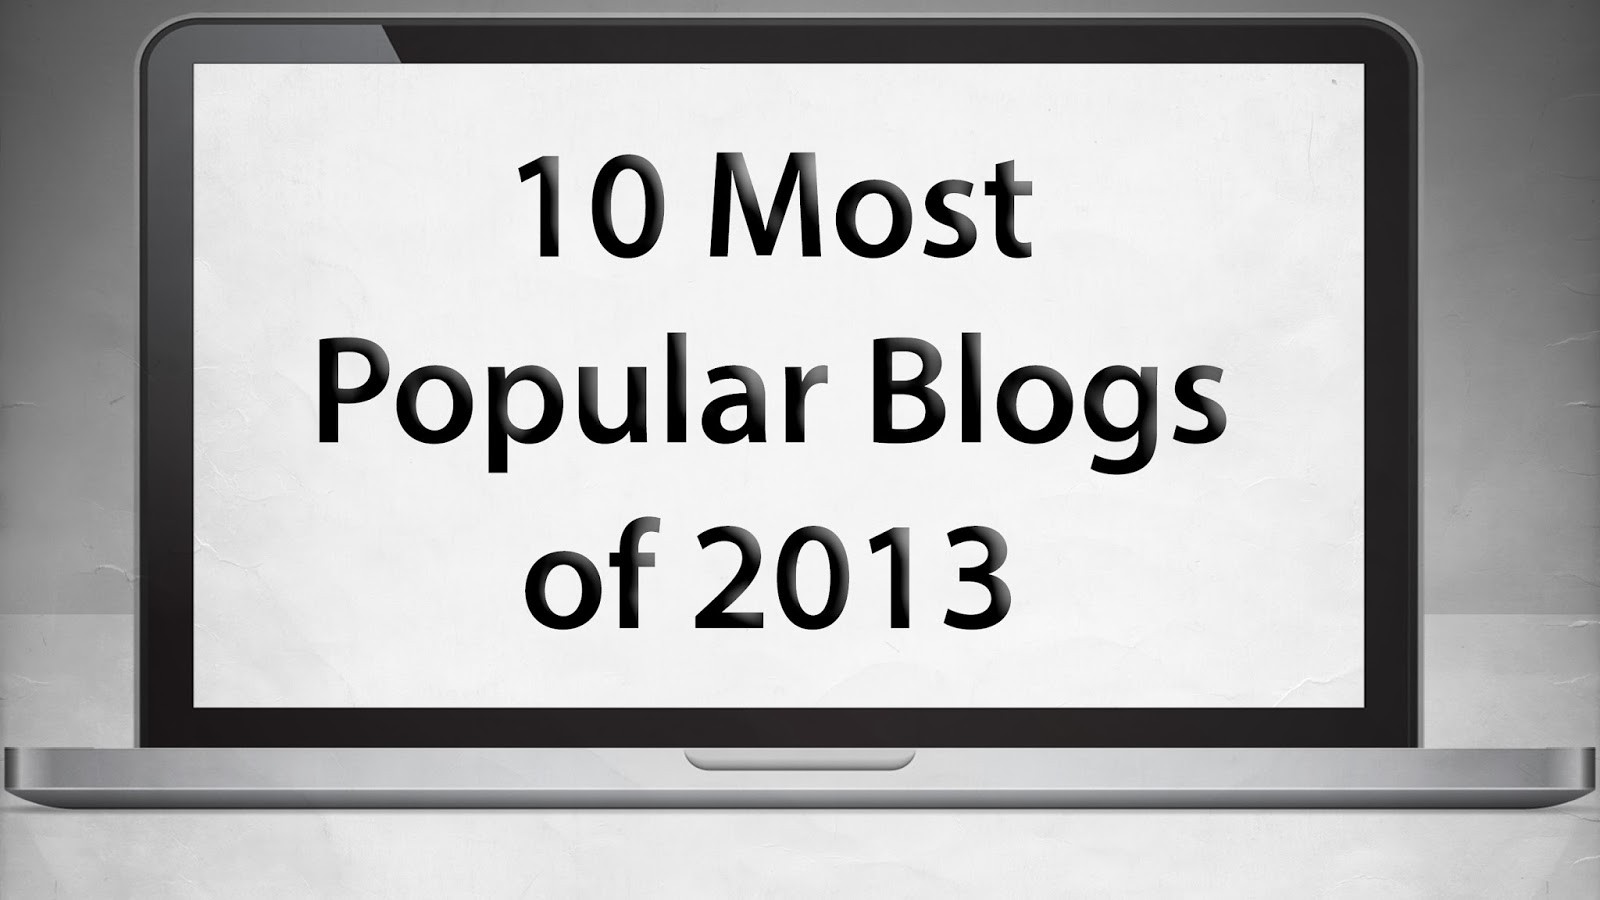 My Top 10 Most Popular Blogs of 2013